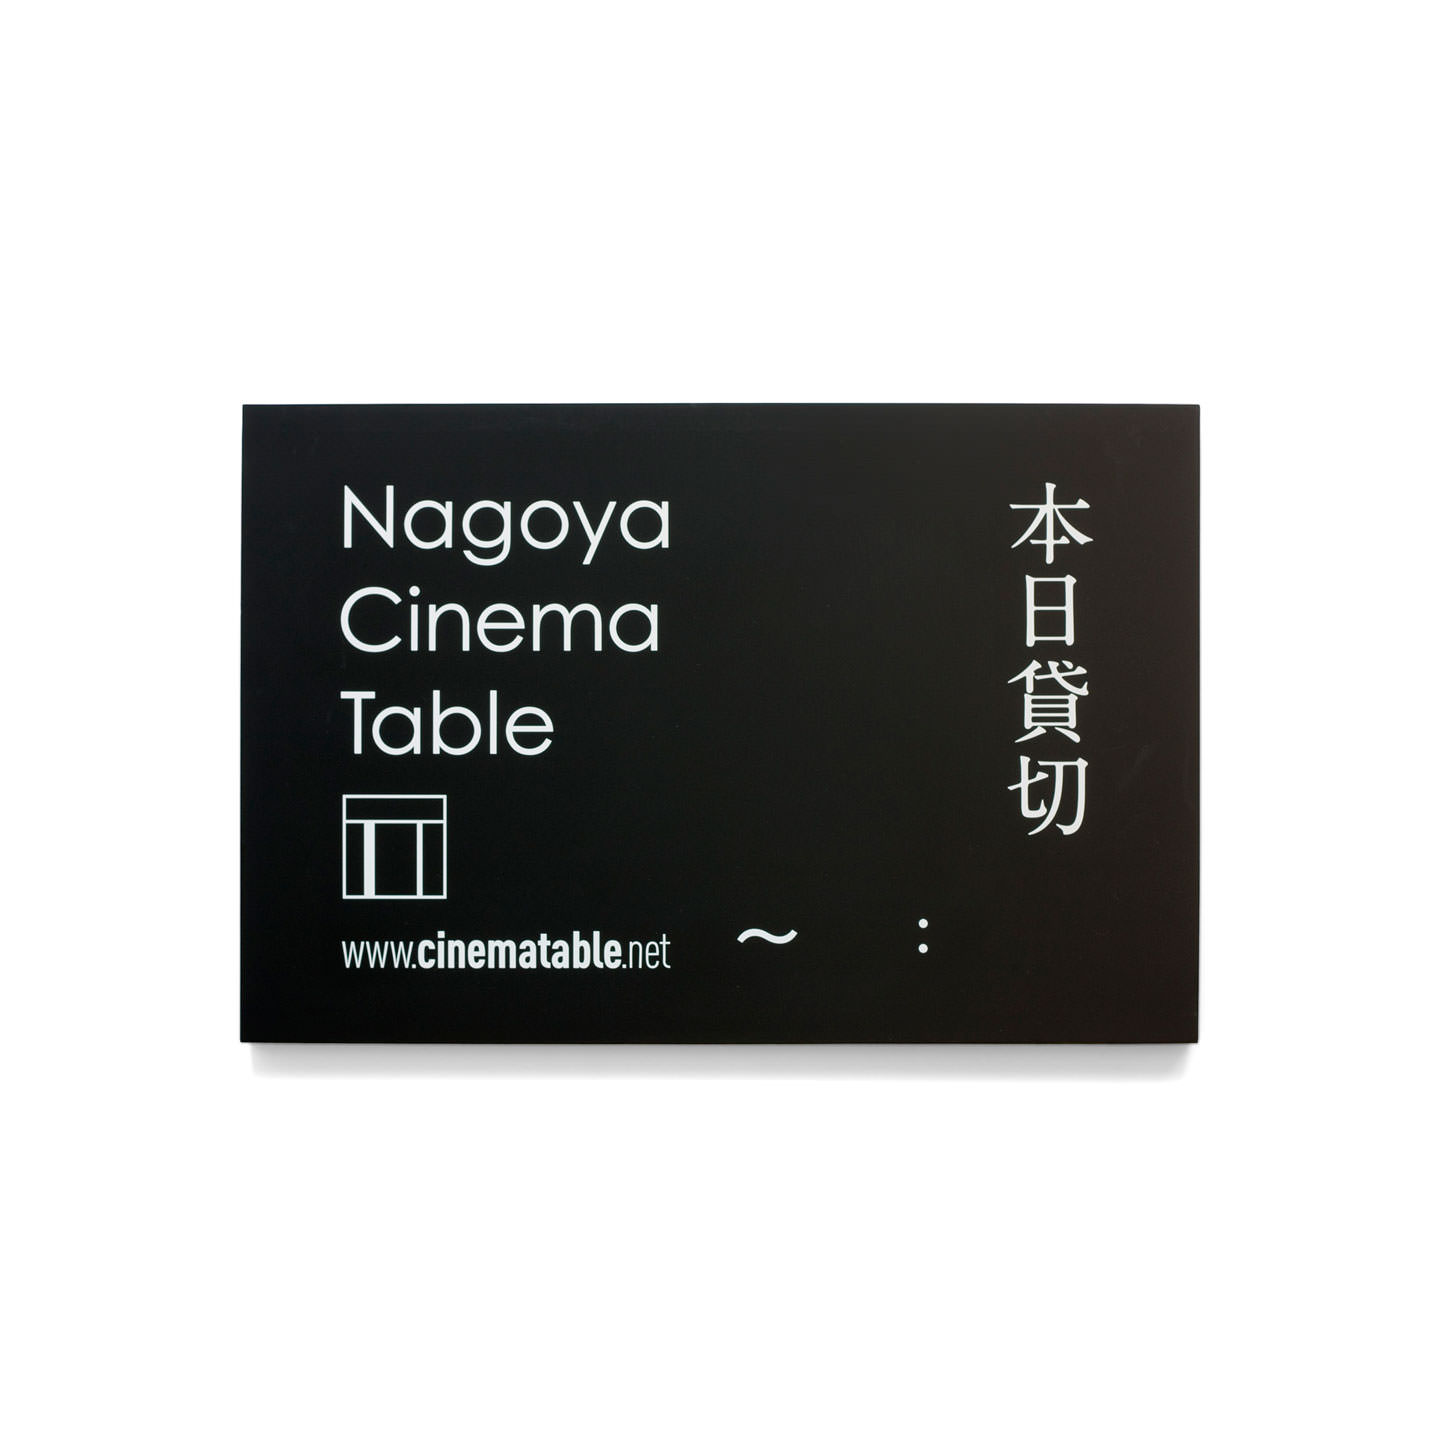 Nagoya Cinama Table